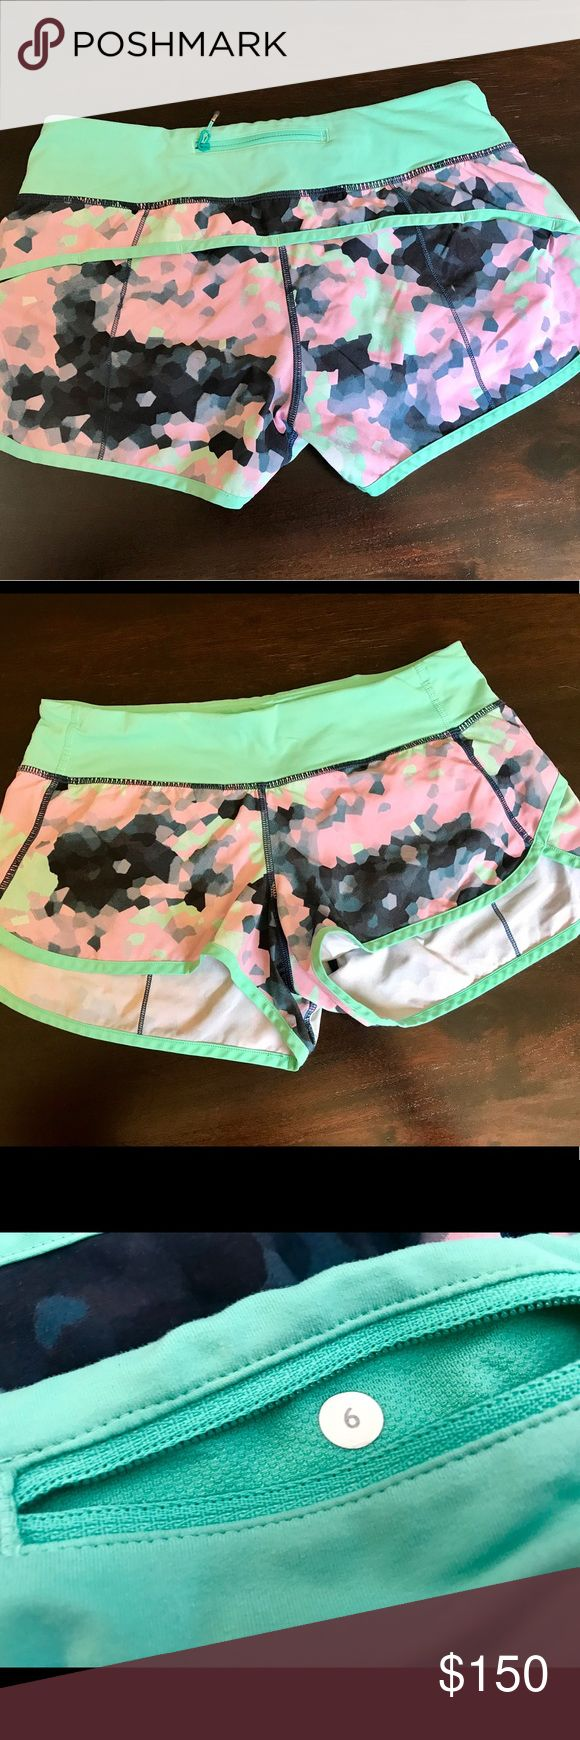 Lululemon speed short sz 6 clouded dreams EUC Lululemon speed short sz 6 clouded dreams EUC.  No rips , tears , stains , peeling or issues .  Just rotating my stock . lululemon athletica Shorts